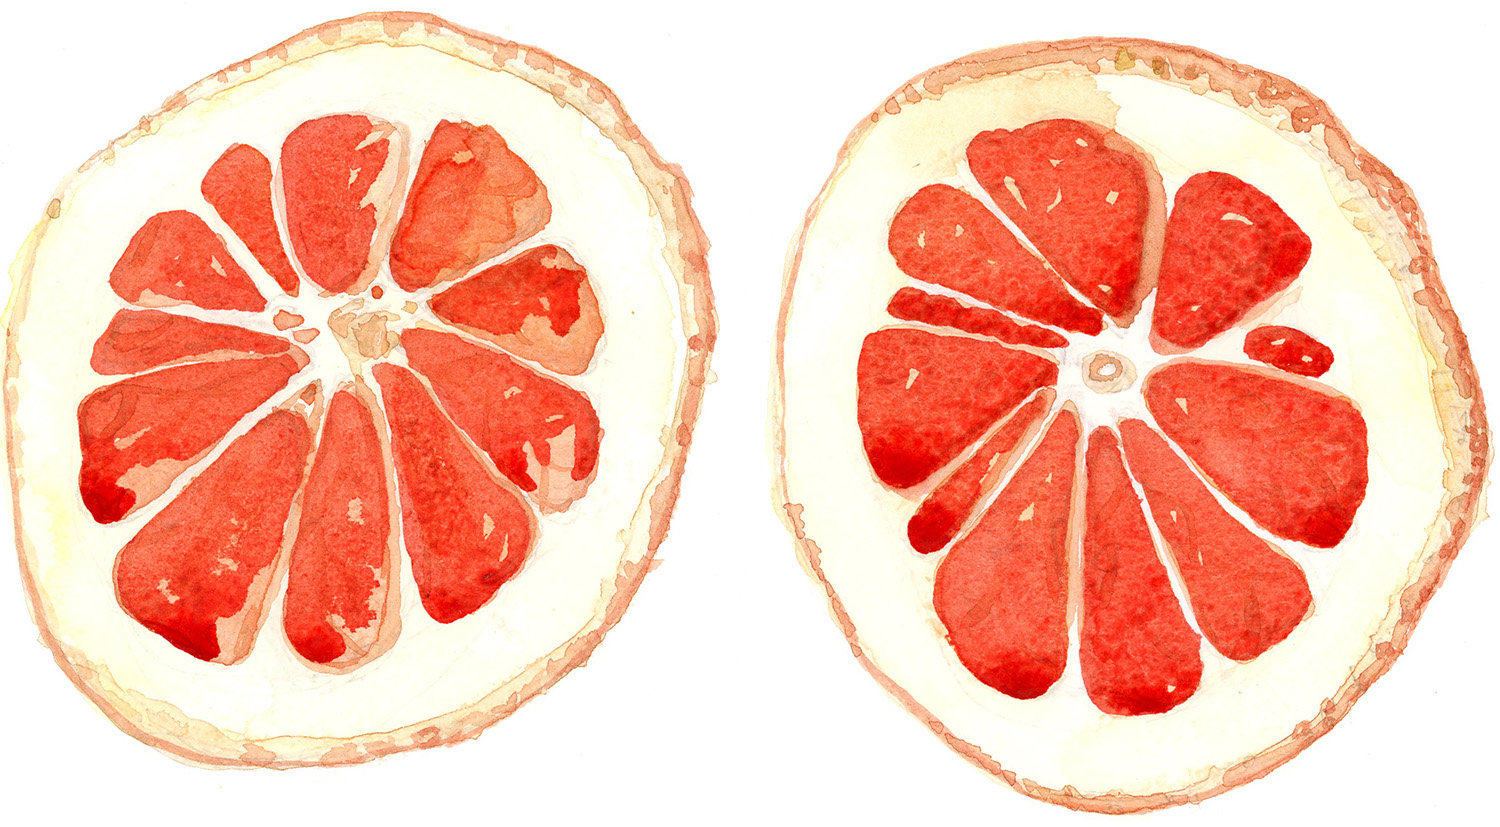 Pink Grapefruit Slices